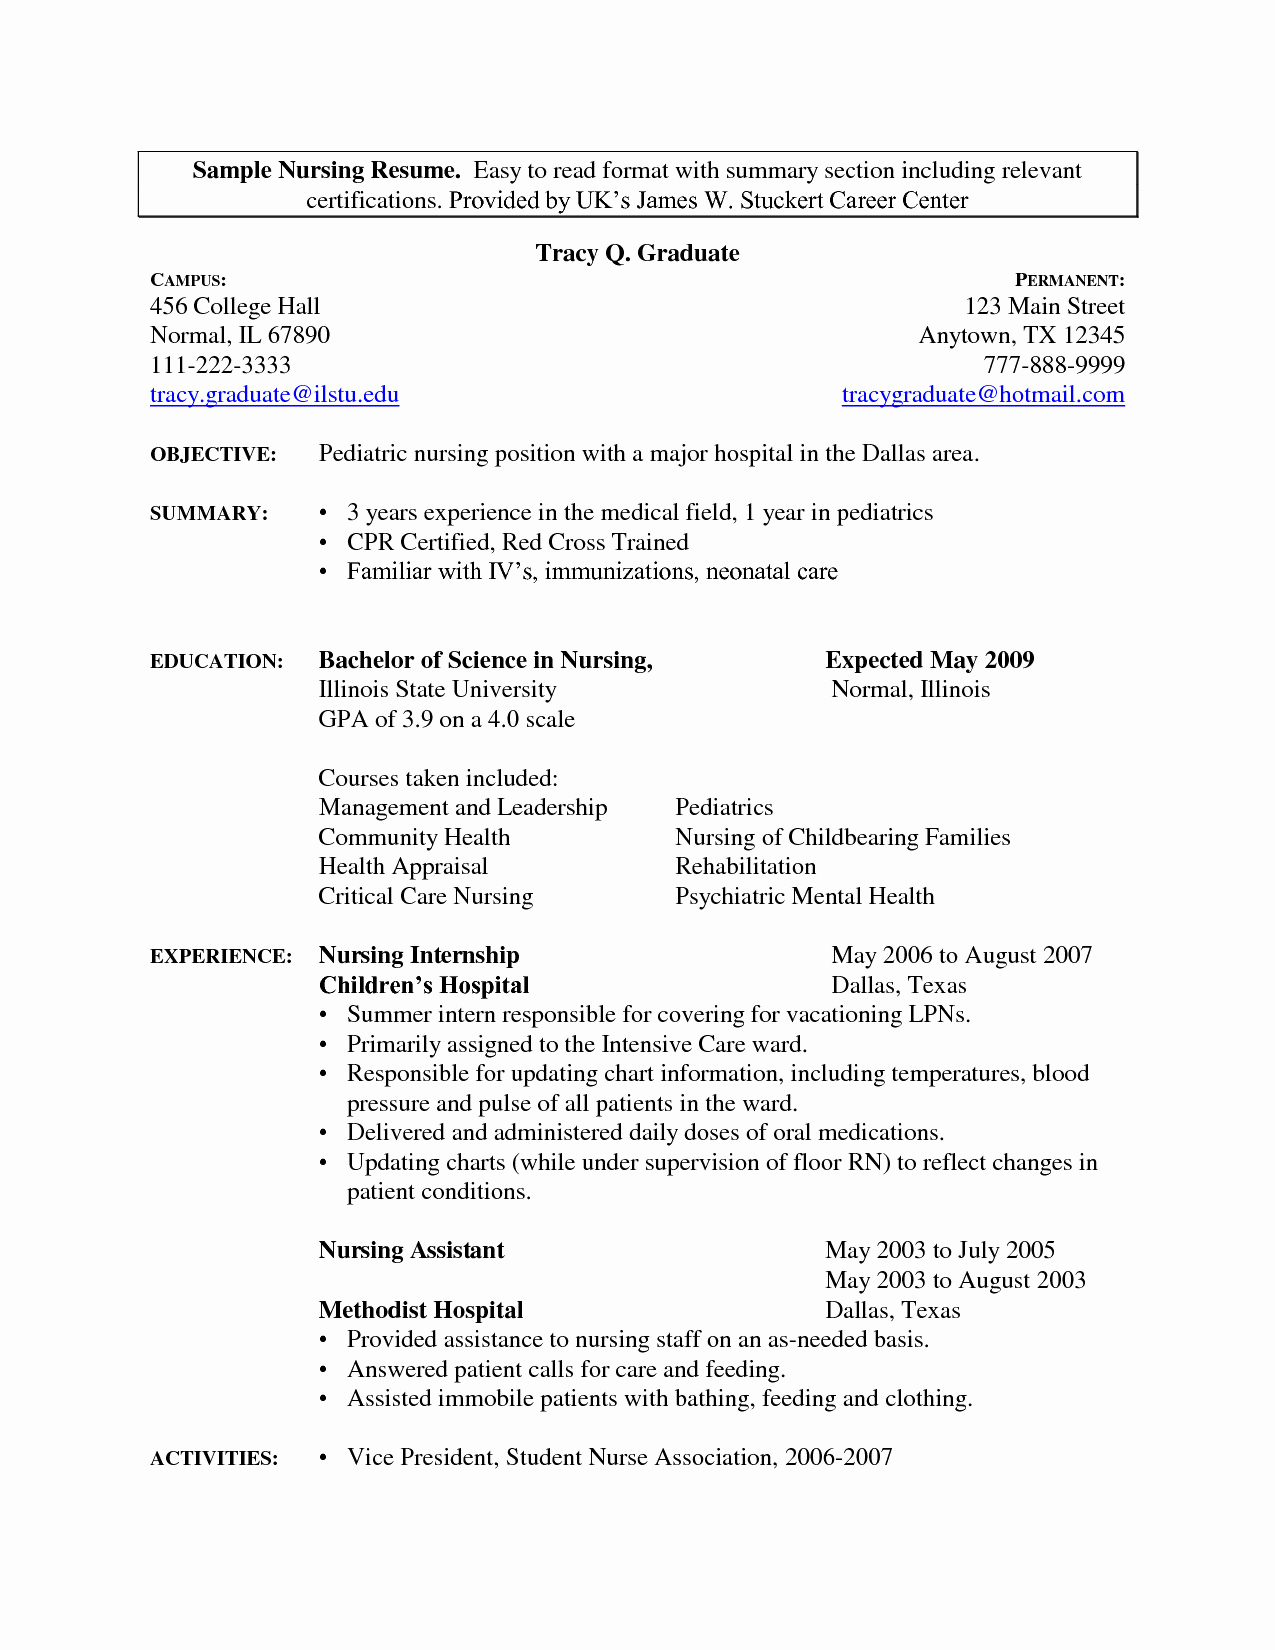 Cover Letter Template for Medical assistant - Medical assistant Sample Resumes Roddyschrock